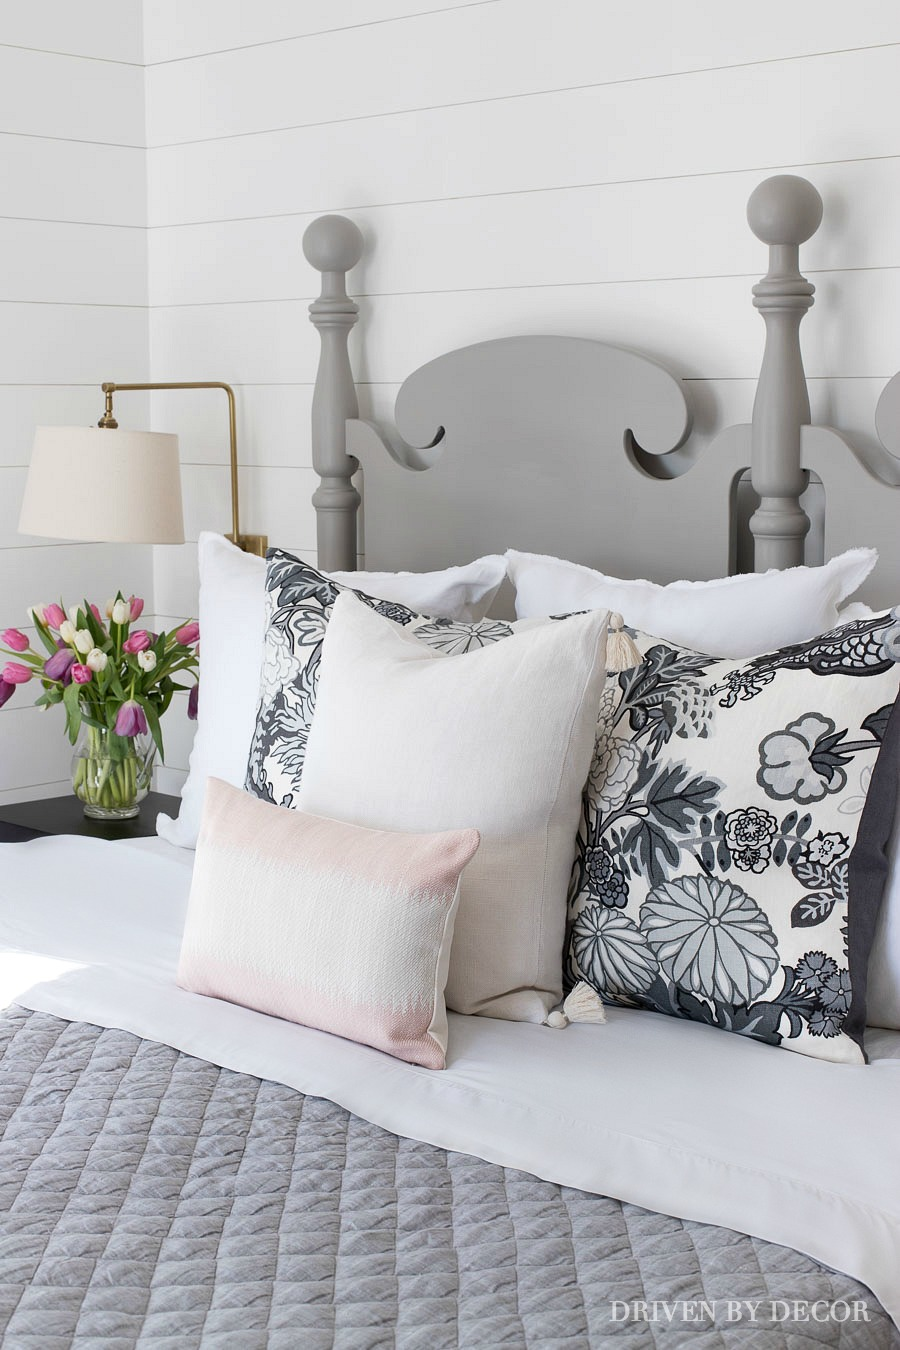 Pretty combination of pillows and bedding (love the quilt!) for spring!